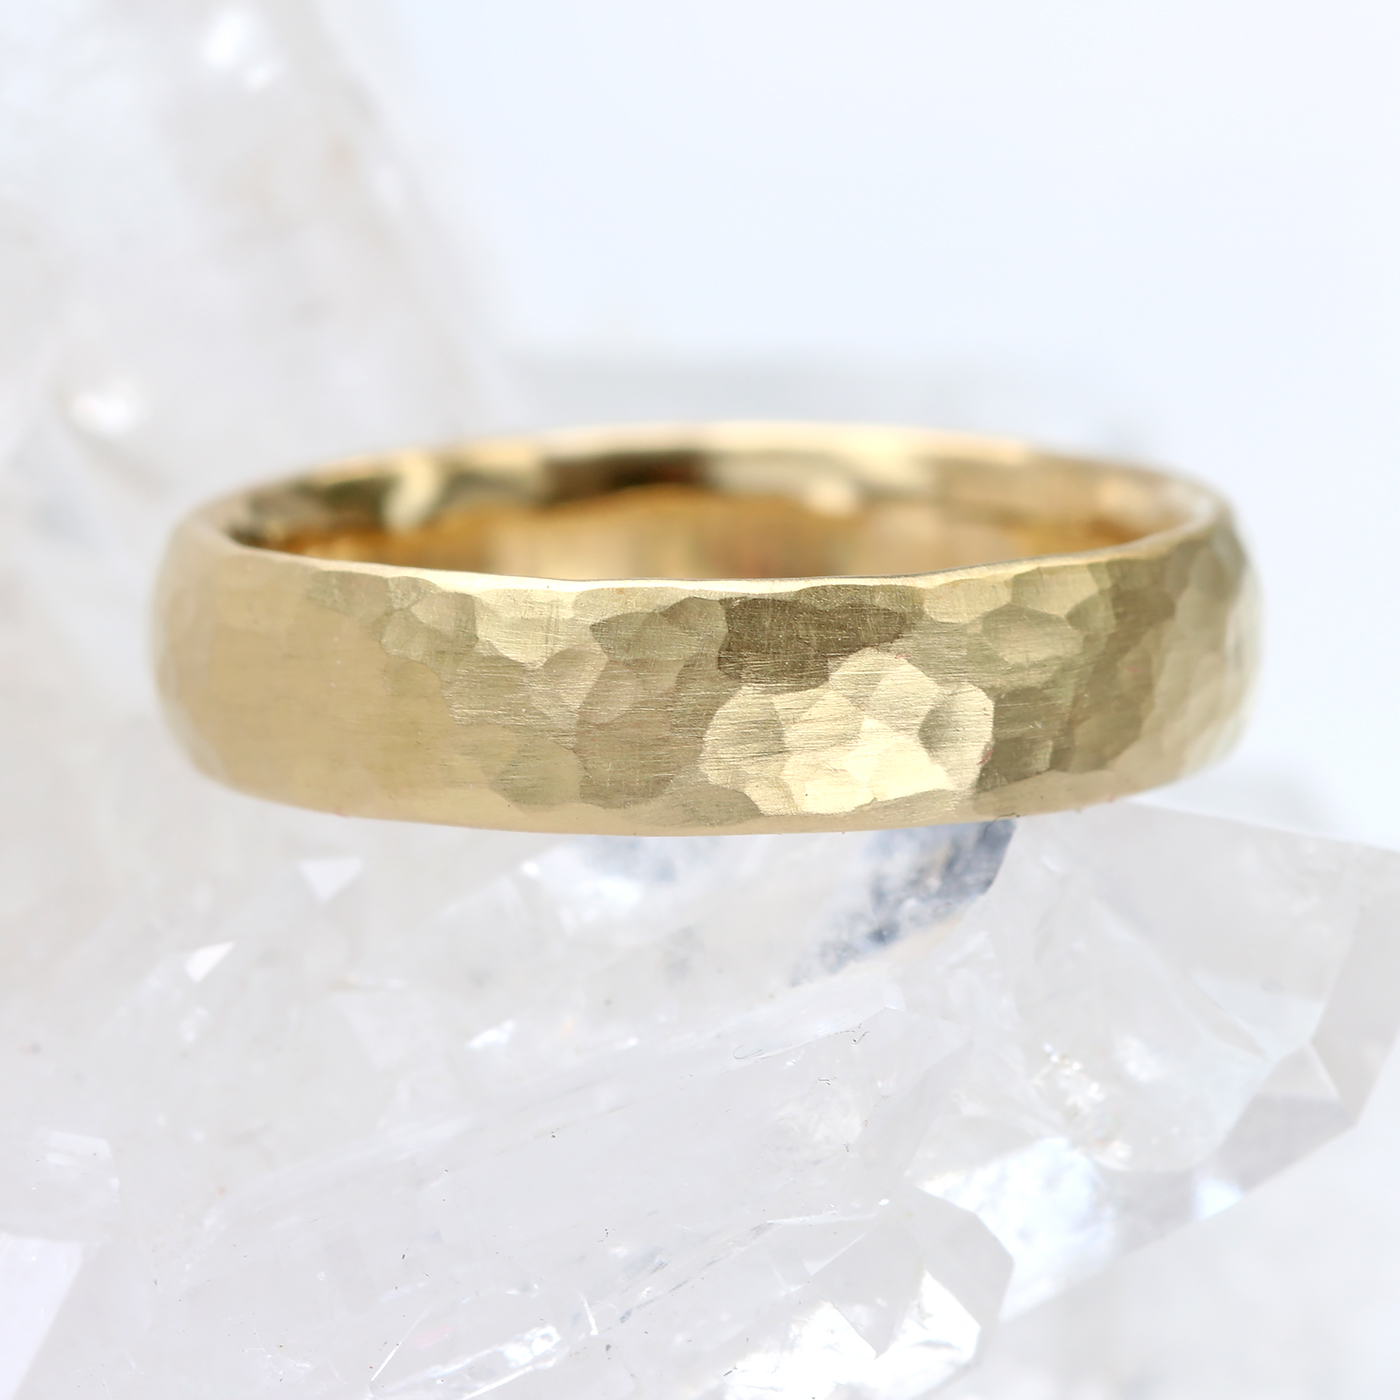 It is a picture of Hammered Wedding Ring in 422ct Gold or Platinum, 42mm Wide Comfort Fit